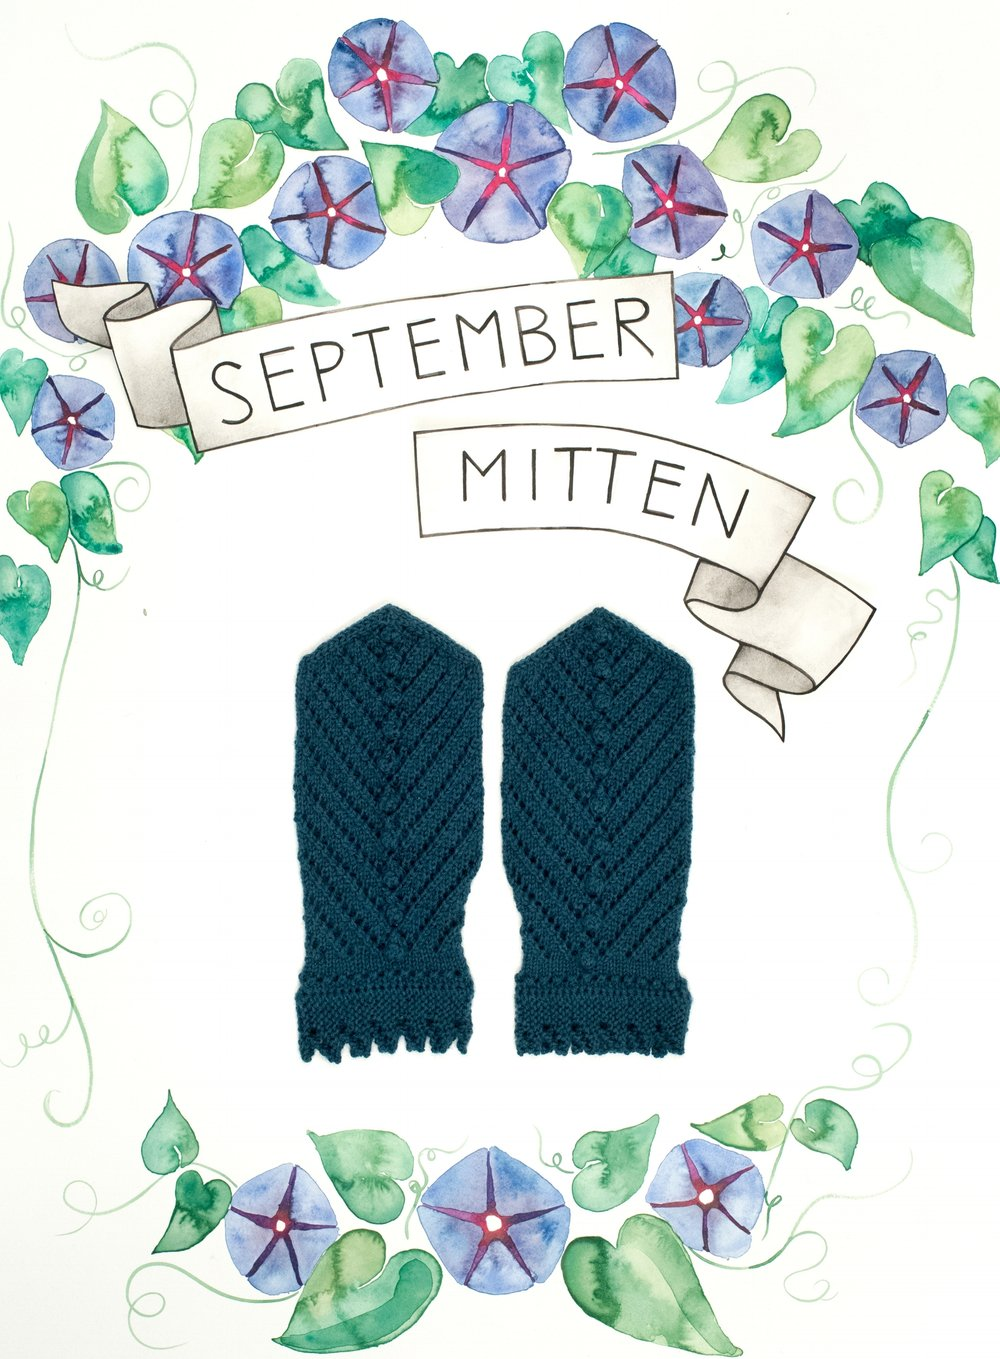 Year of Mittens September Mitten